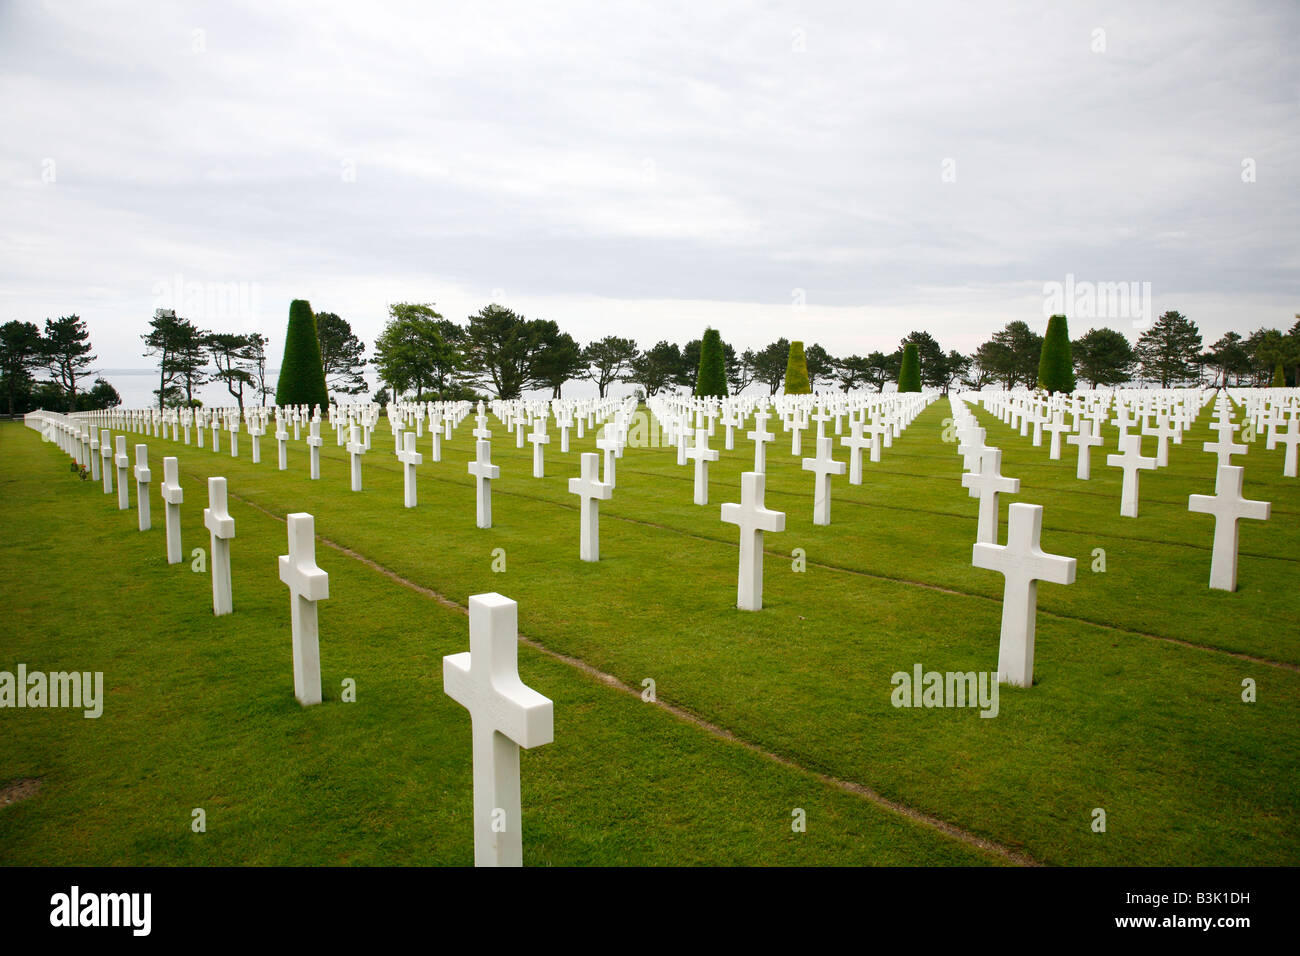 July 2008 - The American Military Cemetery in Colleville sur mer Normandy France - Stock Image